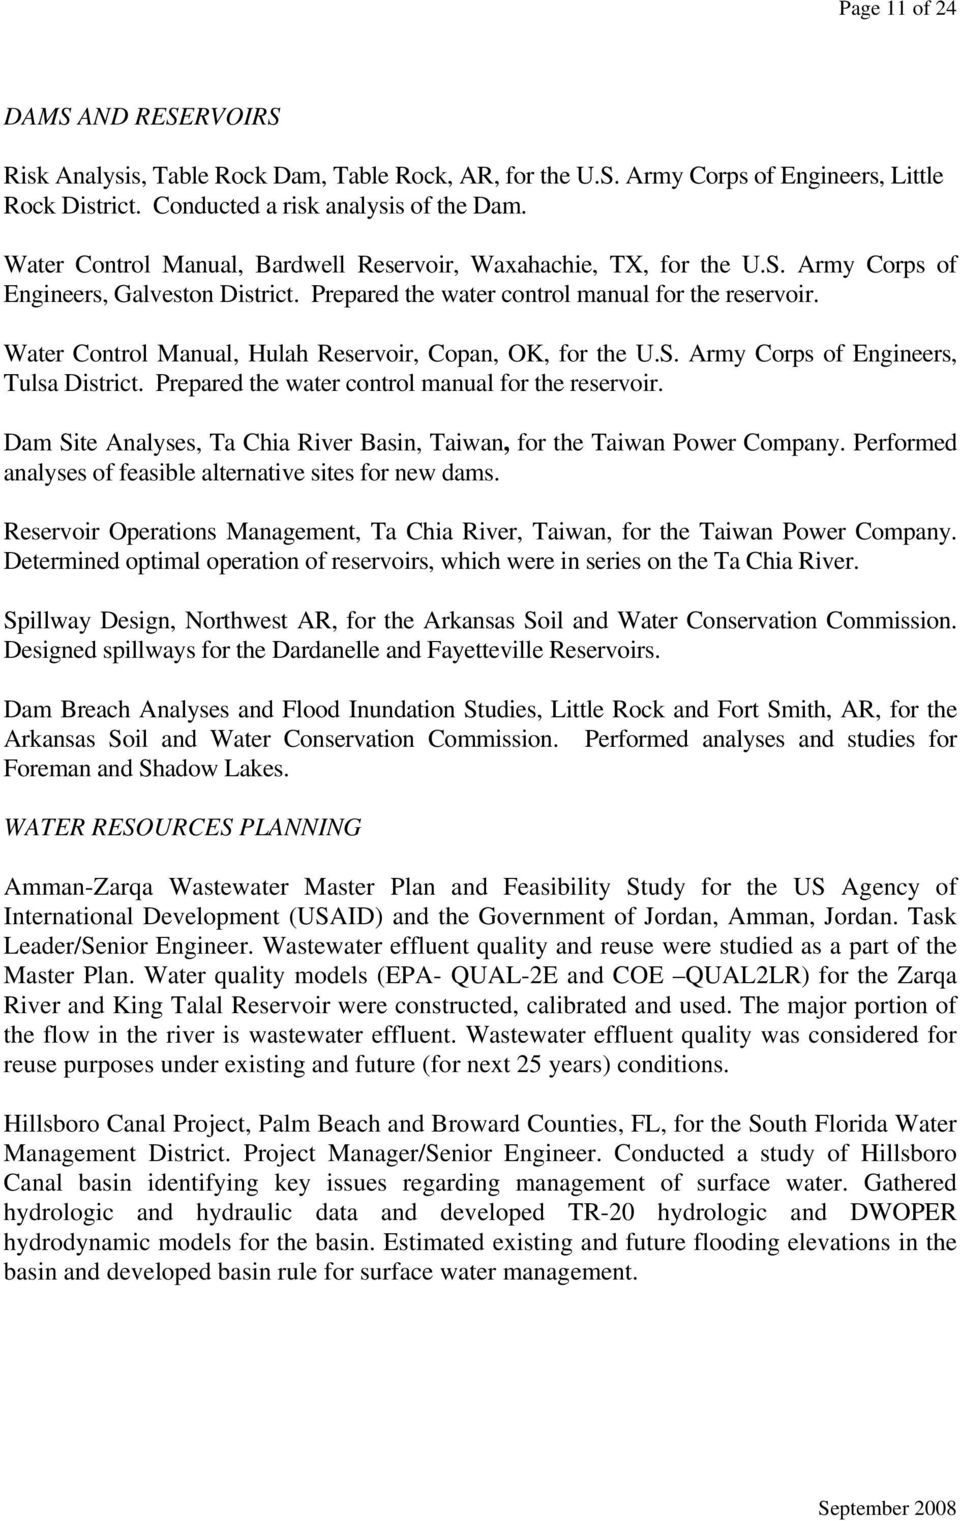 Water Control Manual, Hulah Reservoir, Copan, OK, for the U.S. Army Corps of Engineers, Tulsa District. Prepared the water control manual for the reservoir.